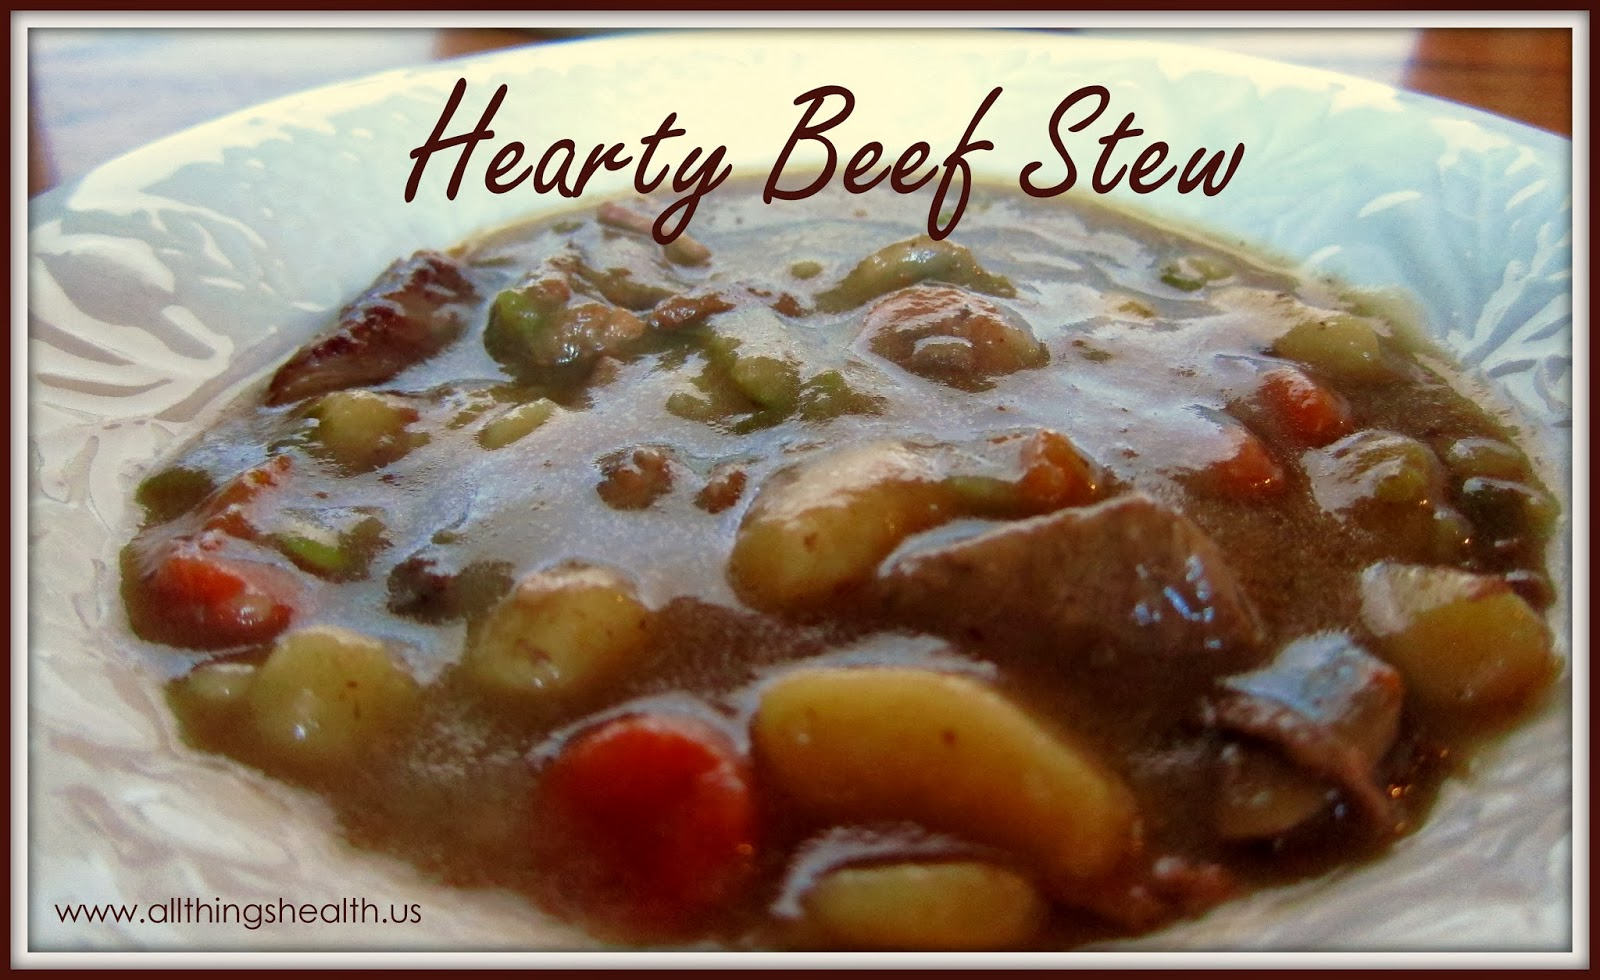 This stew is so easy to make and it tastes great!